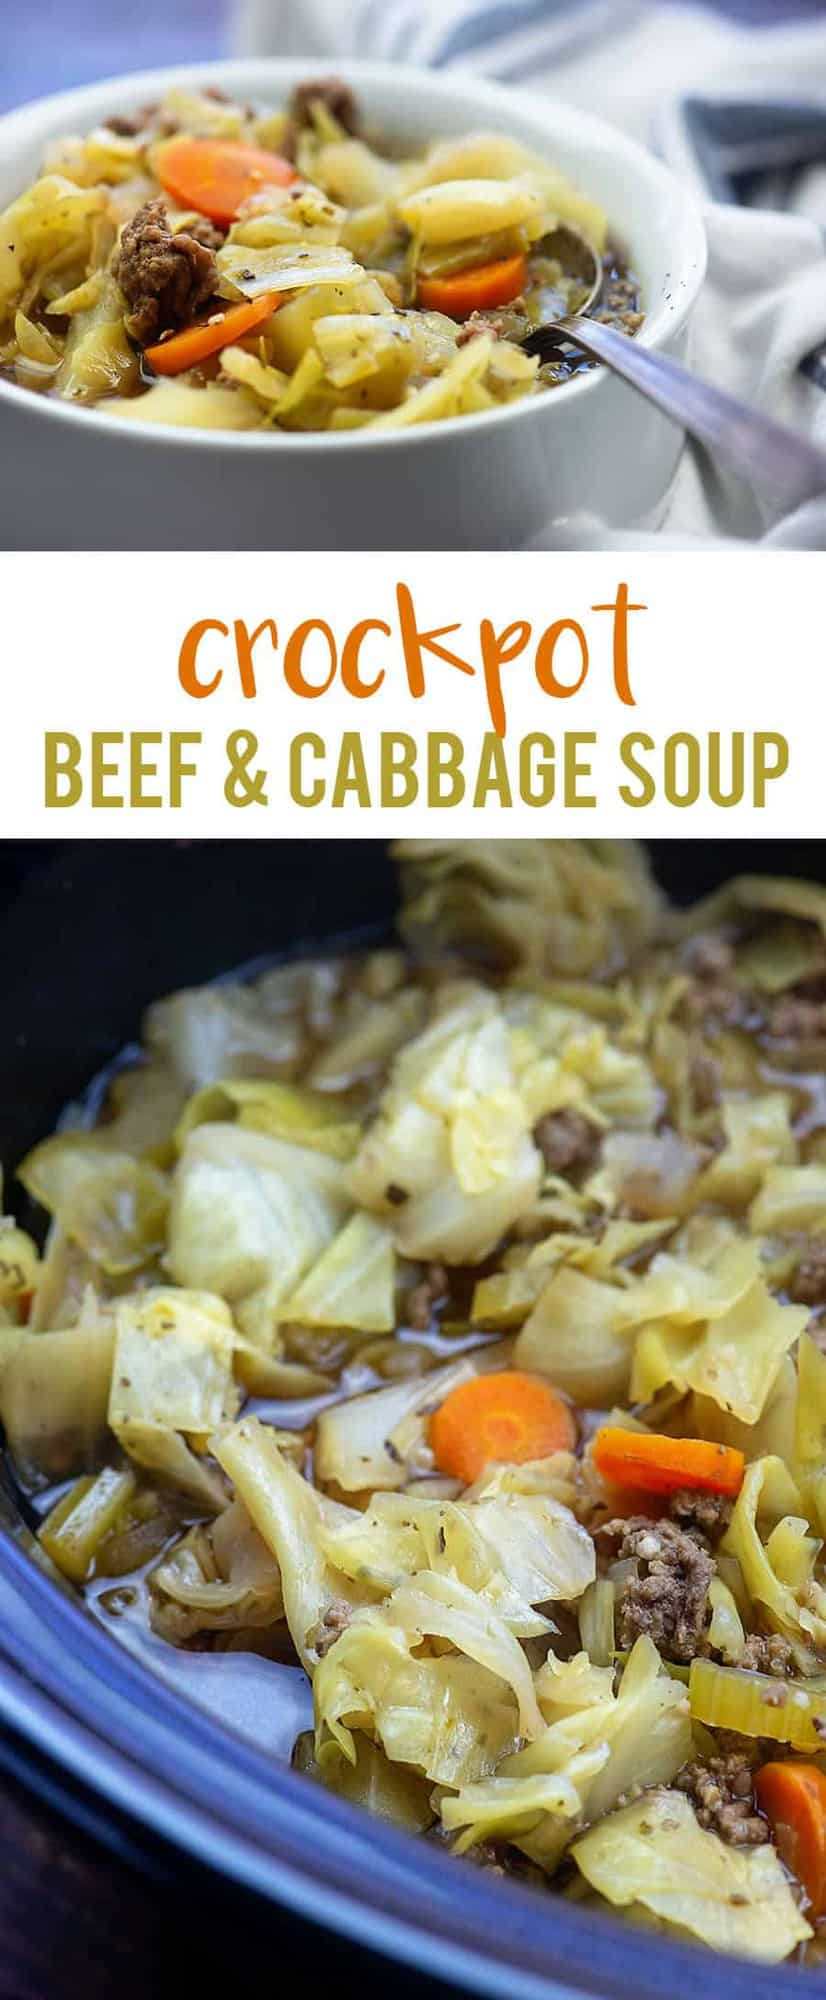 Crockpot Cabbage Soup with beef! It's low carb with just 5 net carbs per serving! #lowcarb #cabbage #soup #crockpot